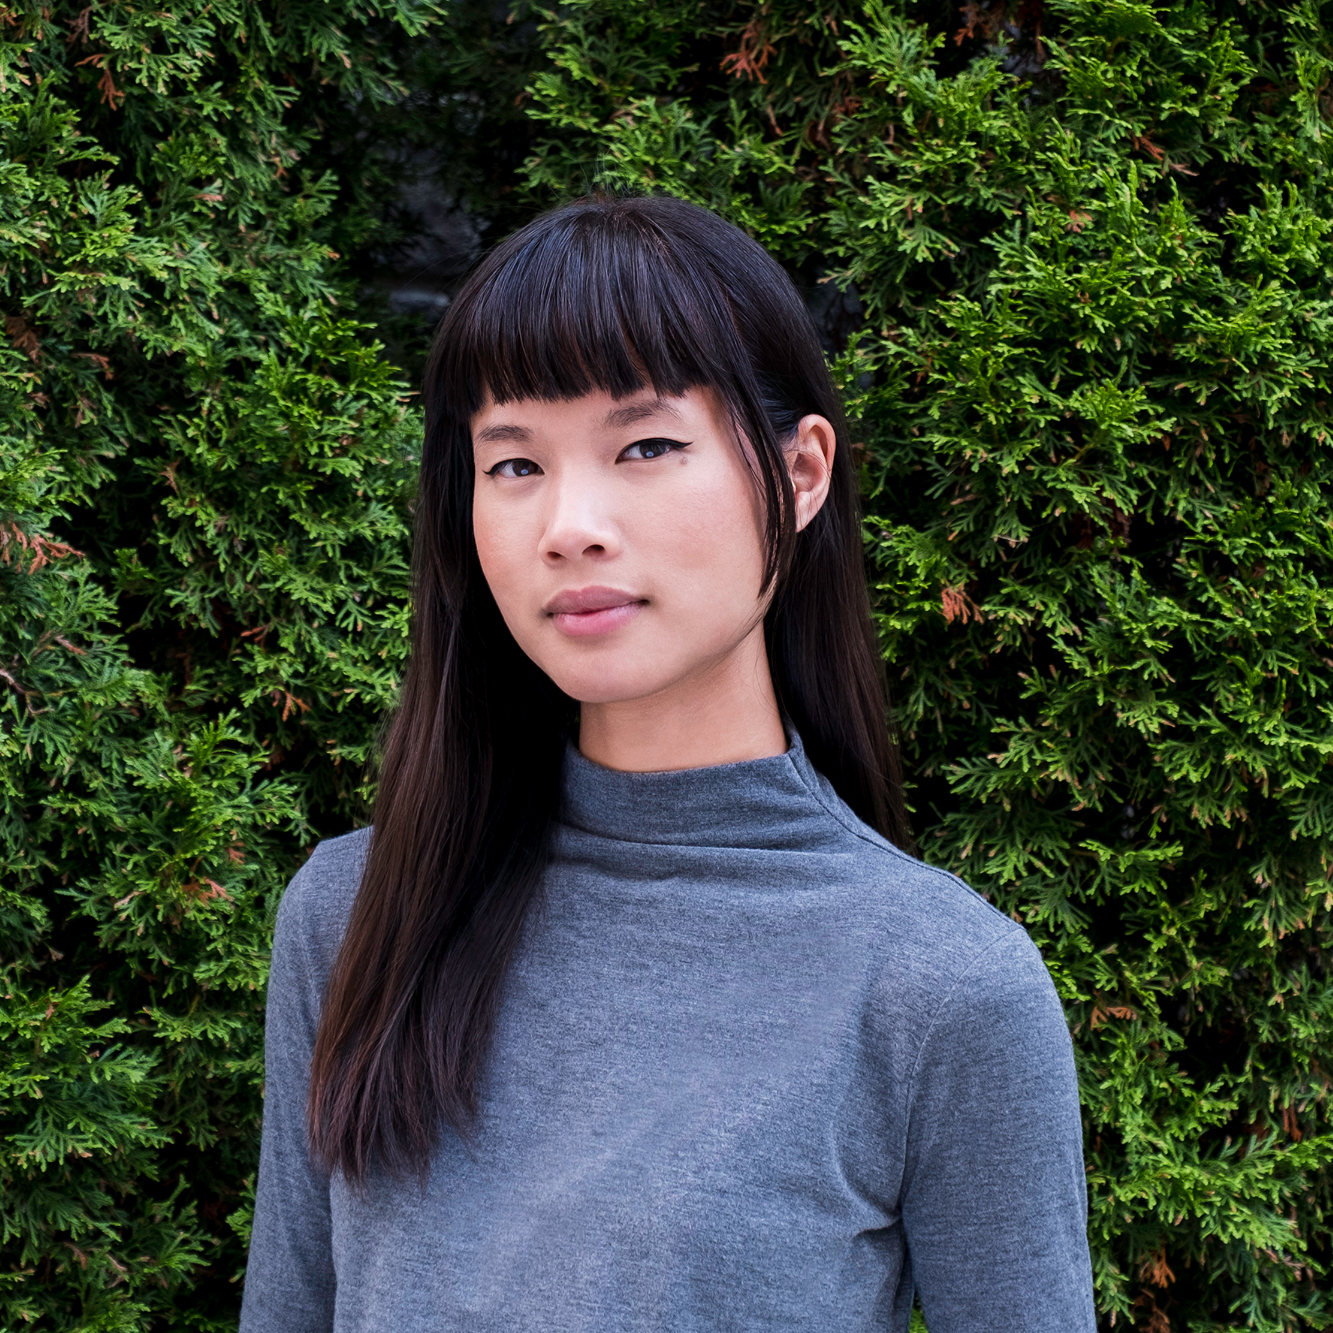 Jeannie Phan - is a Toronto-based illustrator working, living and growing in a little home studio.She is a self-taught plant generalist, urban forest bather and passionate pursuer of daily betterment.Read more.